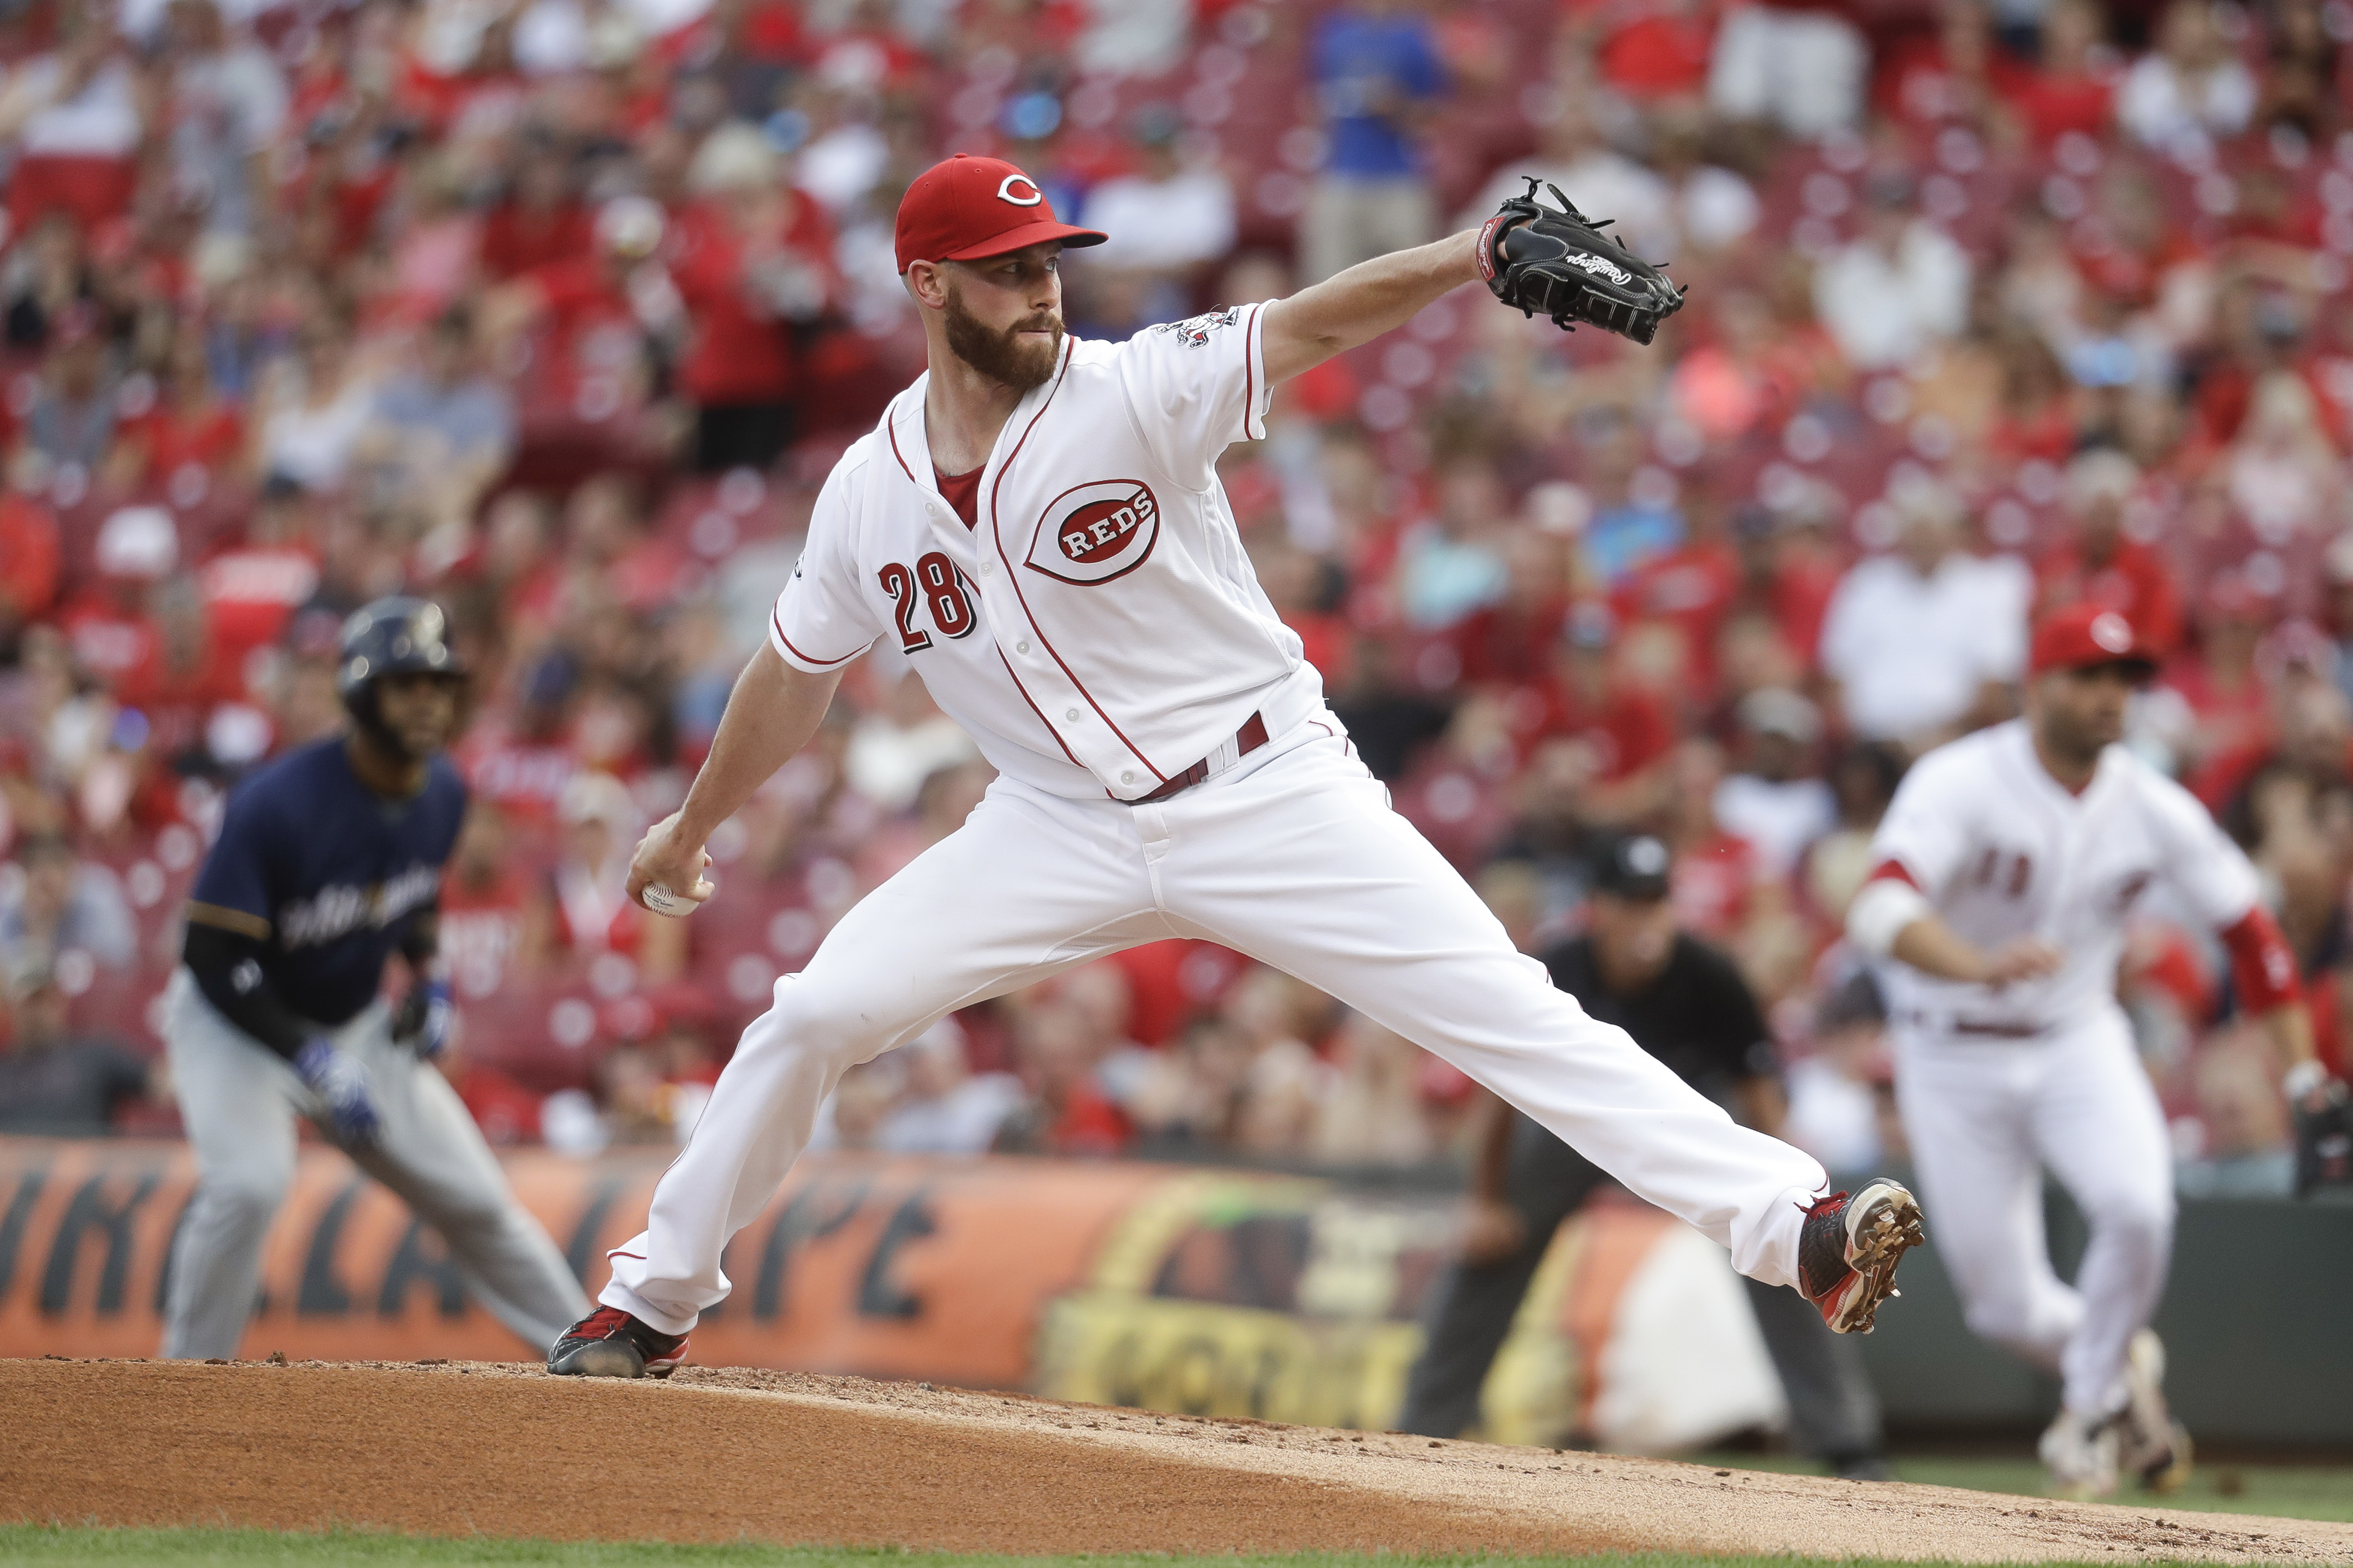 Cincinnati Reds starting pitcher Anthony DeSclafani throws during the first inning of a baseball game against the Milwaukee Brewers, Friday, July 15, 2016, in Cincinnati. (AP Photo/John Minchillo)